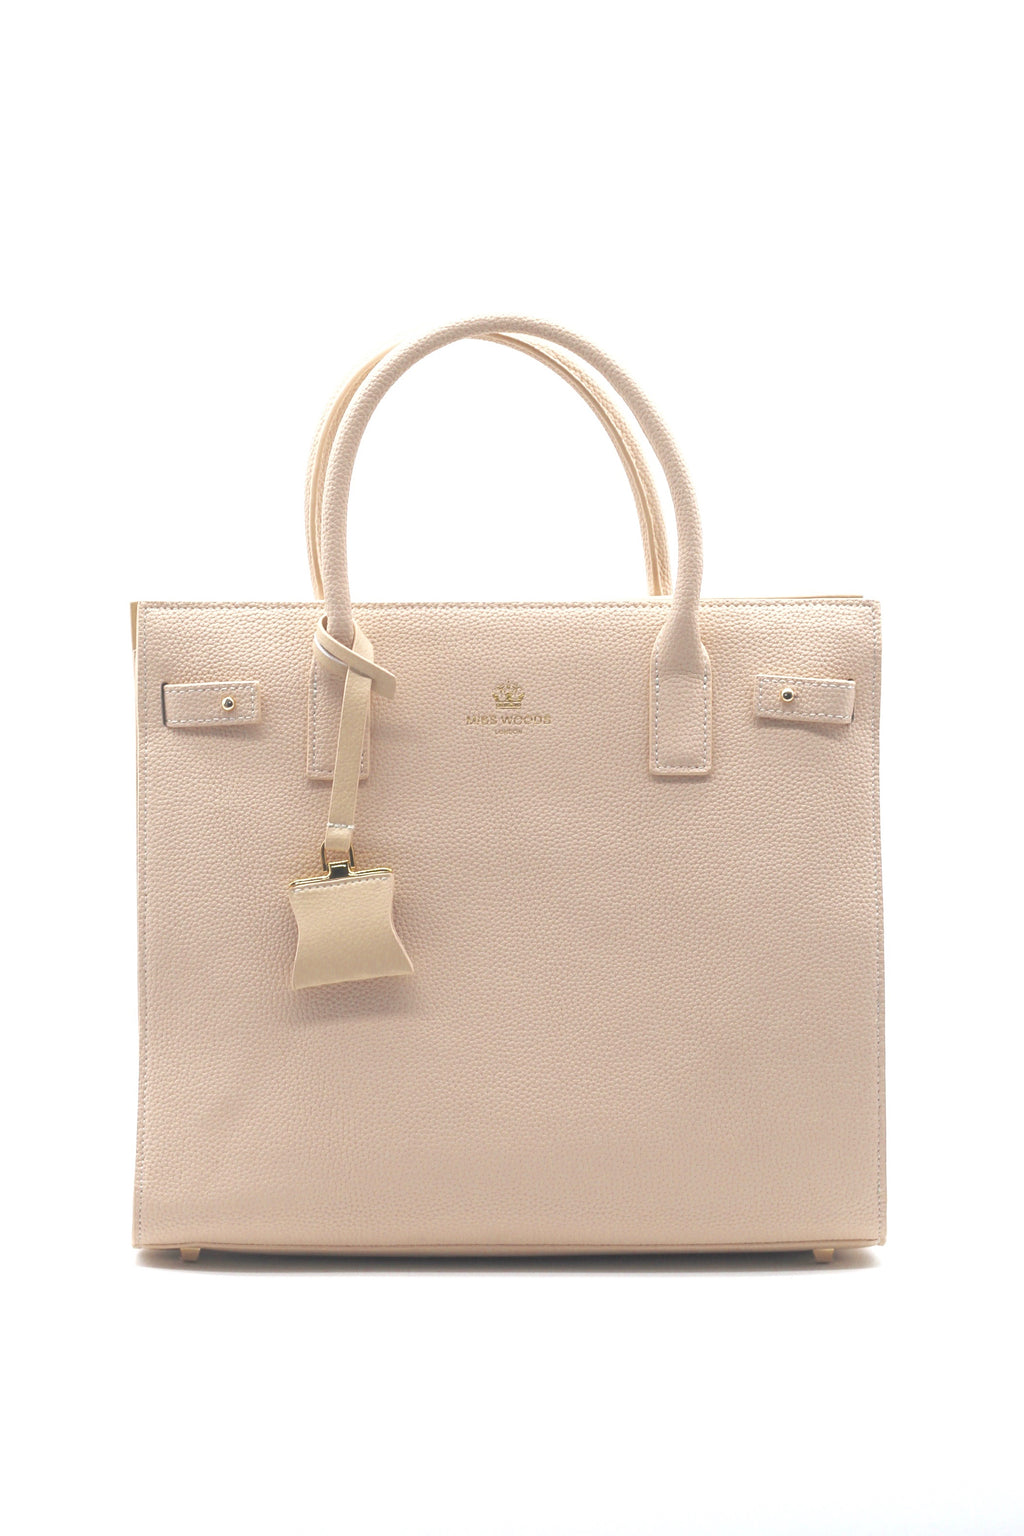 Miss Eleanor Grande Bag - Blush